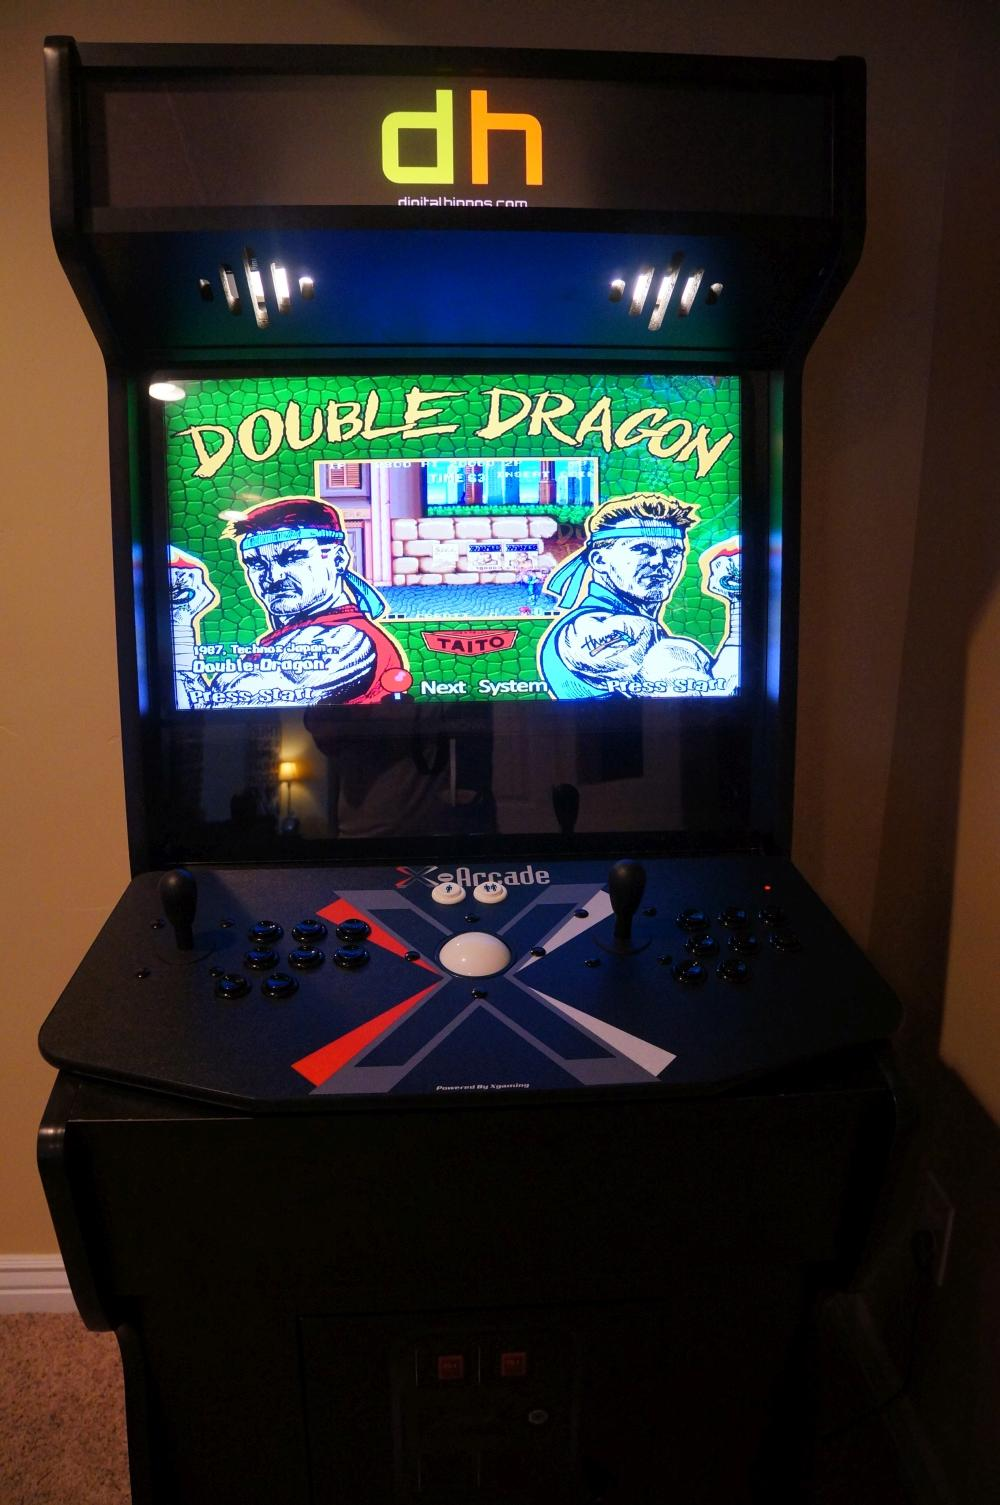 Spotlight The Digital Hippos Custom Arcade Cabinet